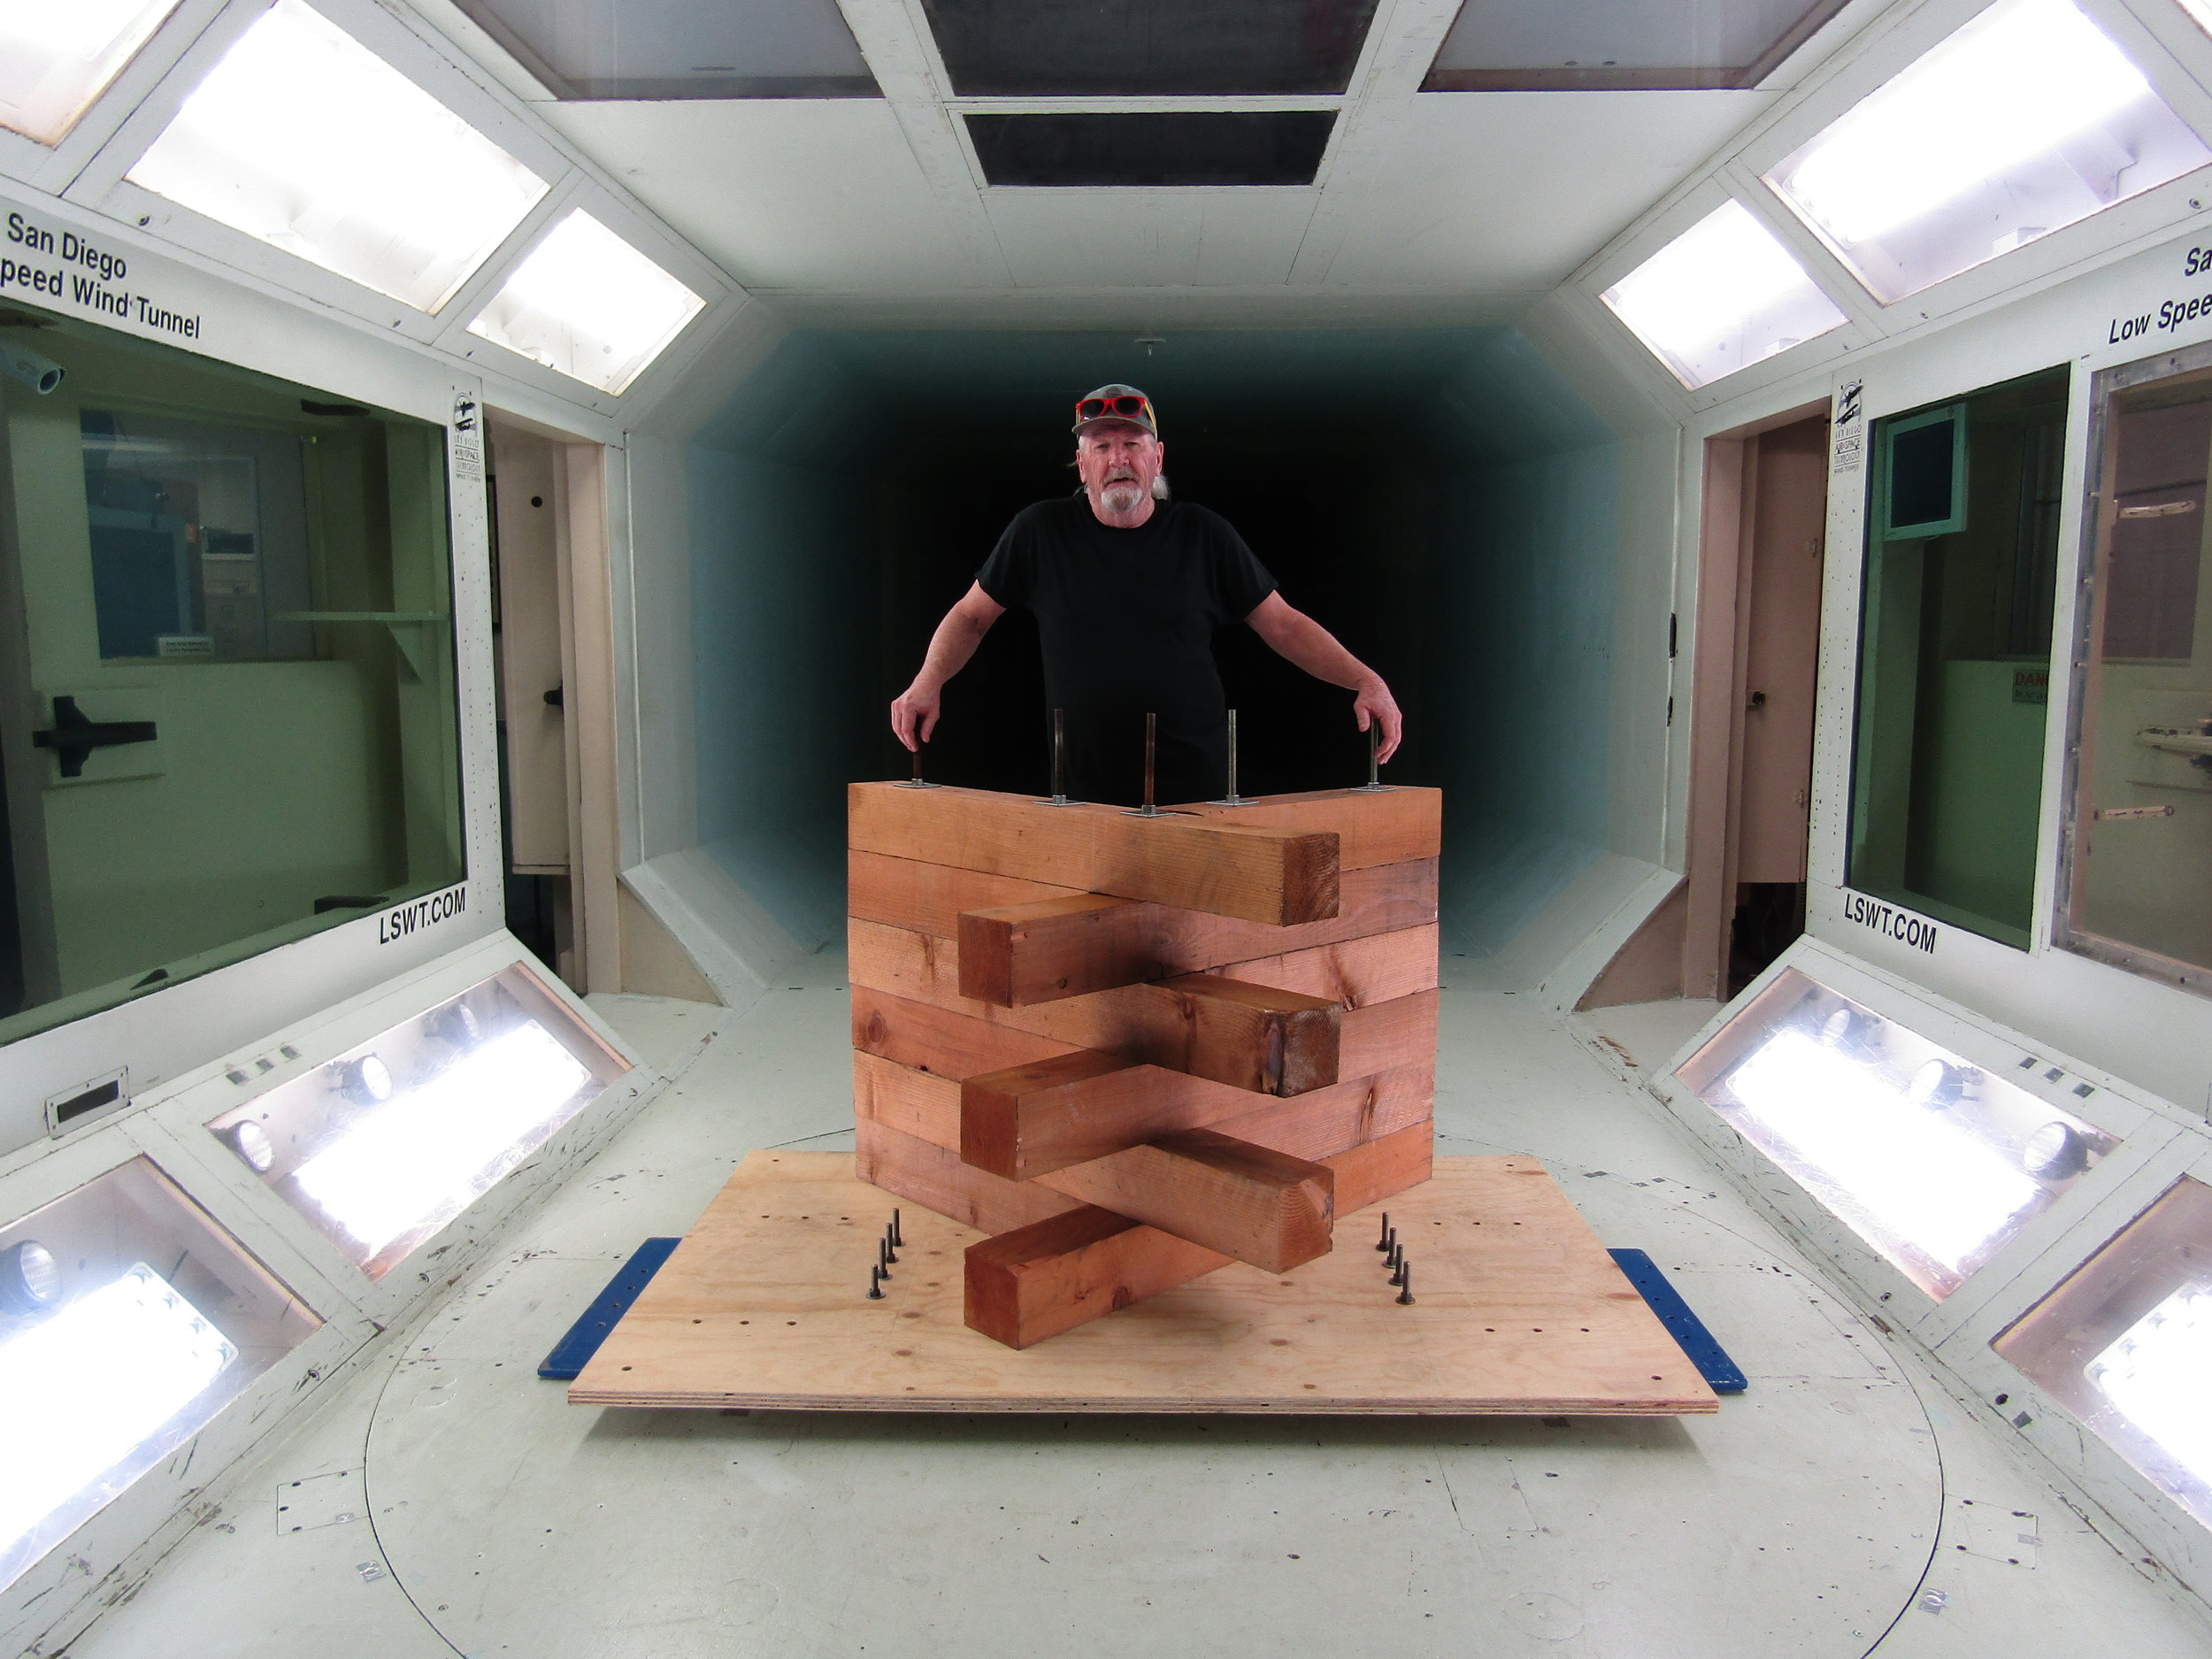 In the wind tunnel, our model survived 150mph winds without even moving.